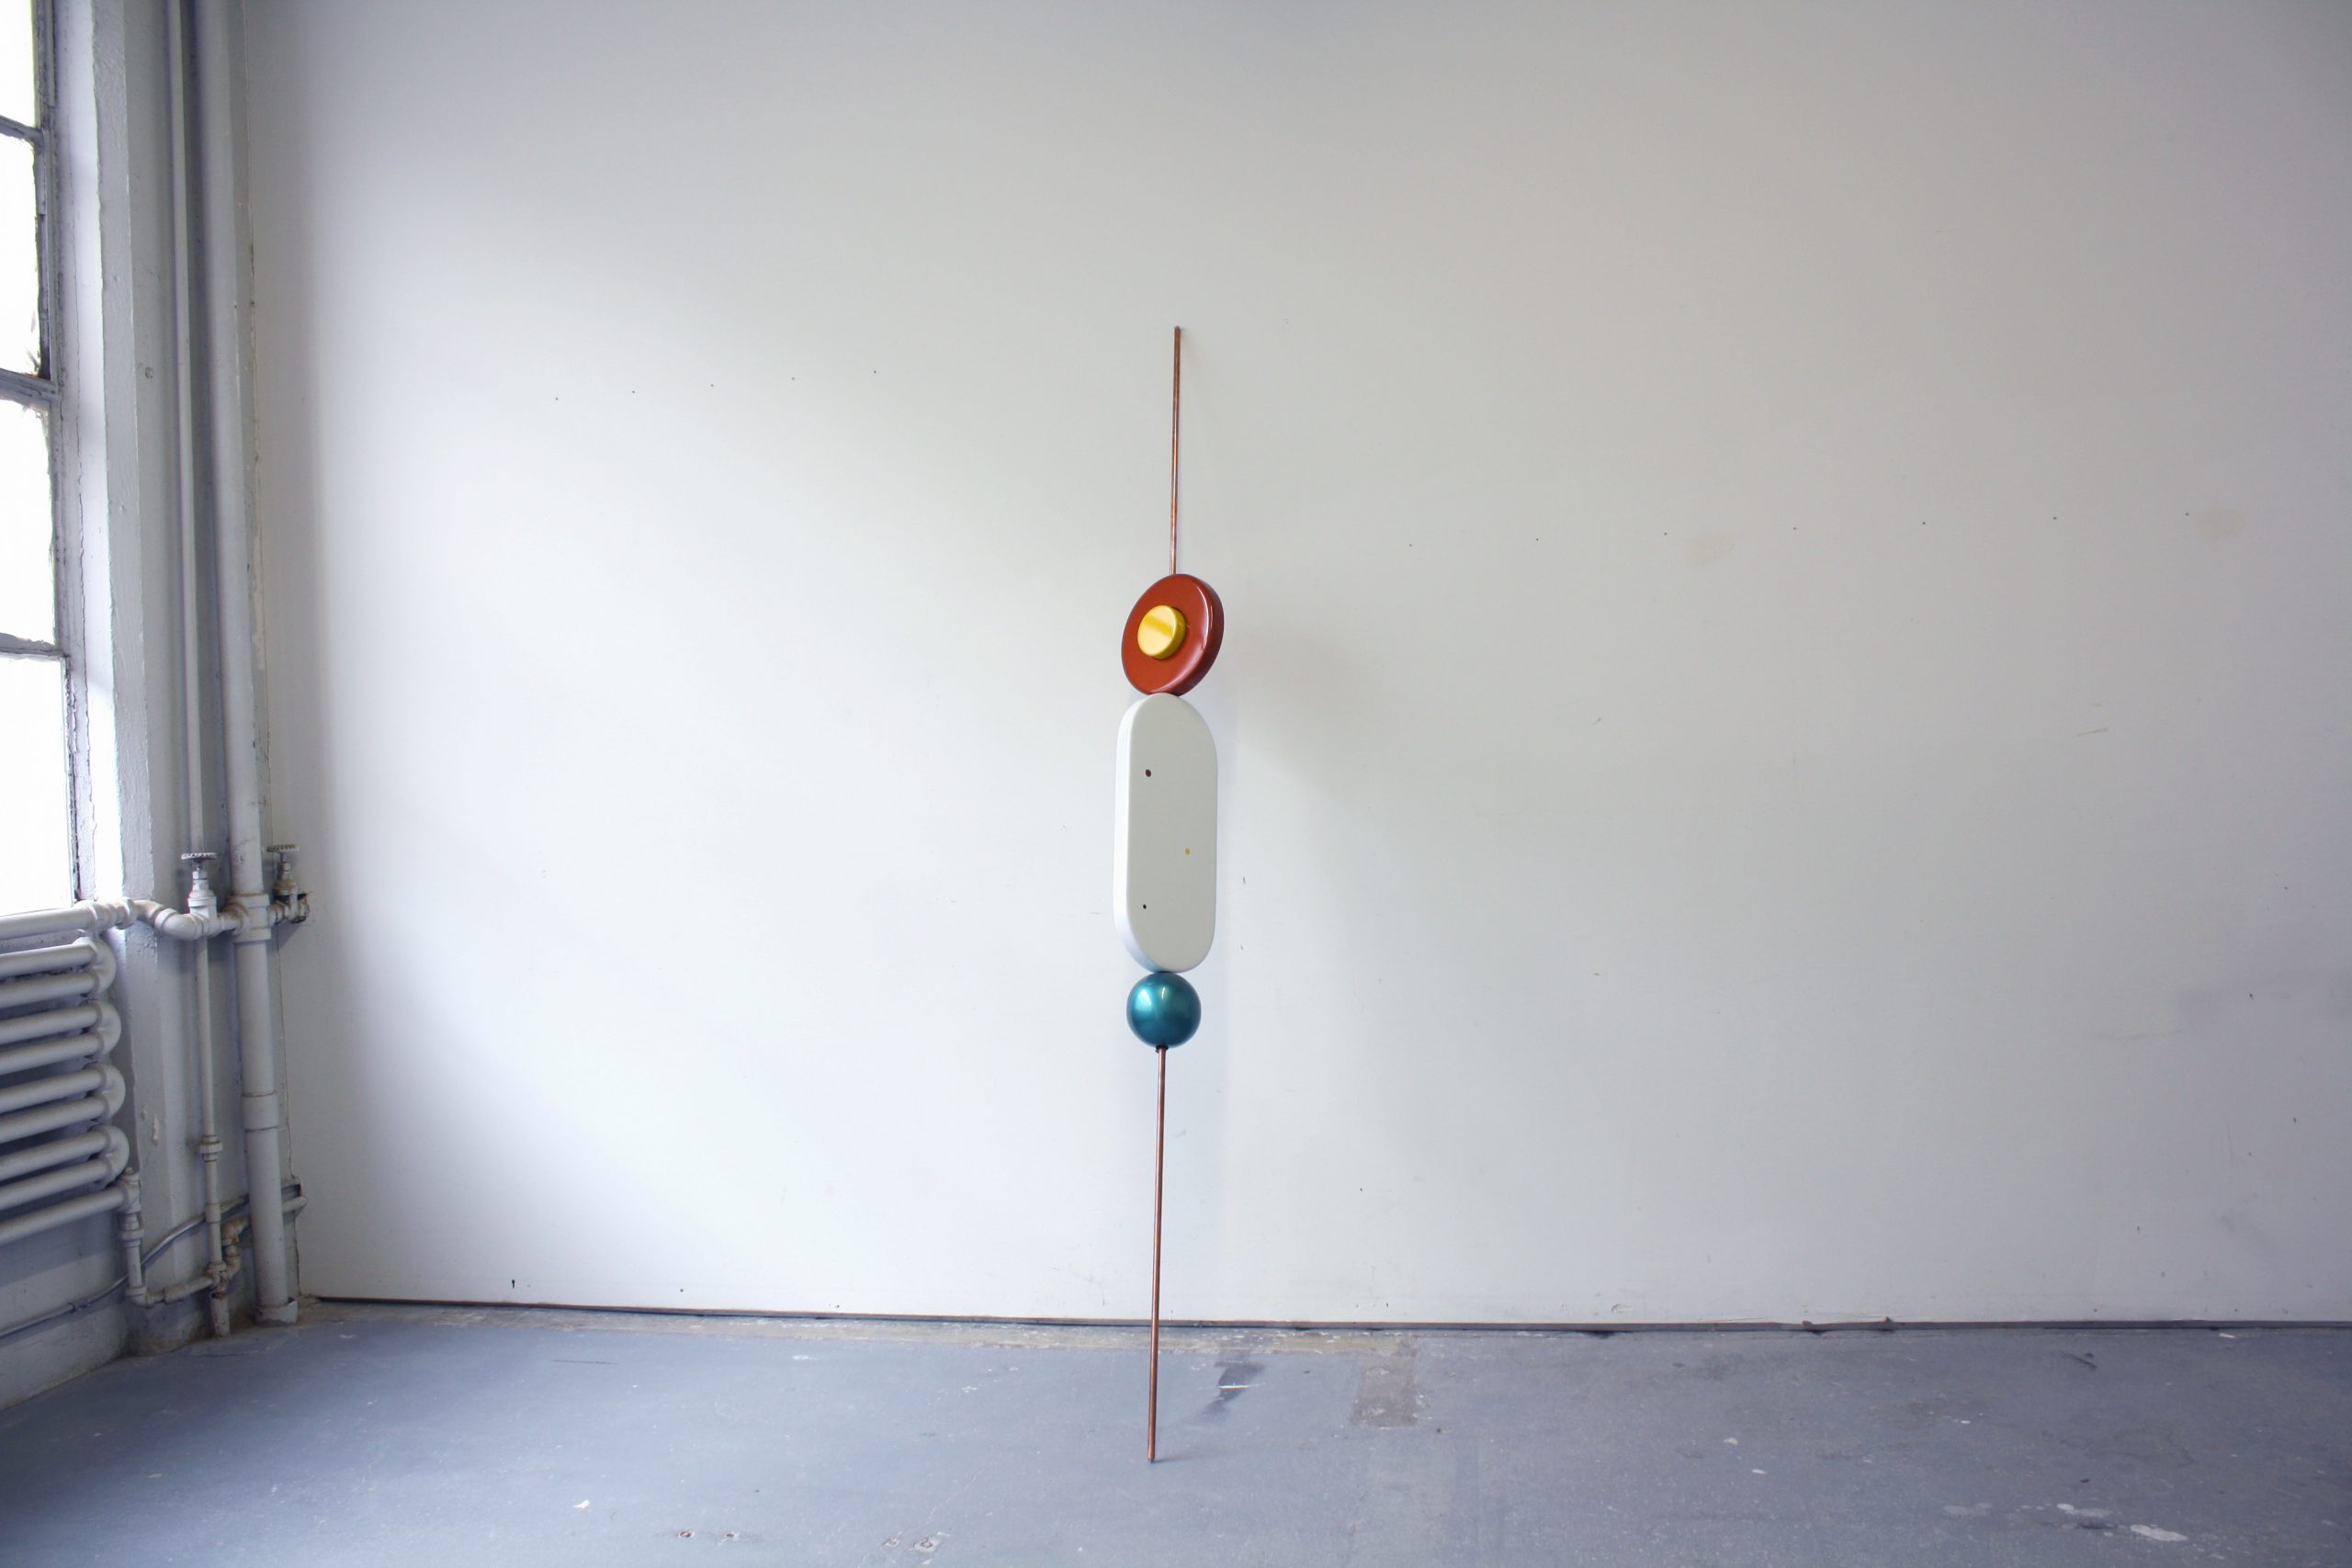 Reuven Israel, SBM1 (Stand By Me 1), 2012, Copper coated steel rod MDF and paints, 244 x 28 x 28 cm